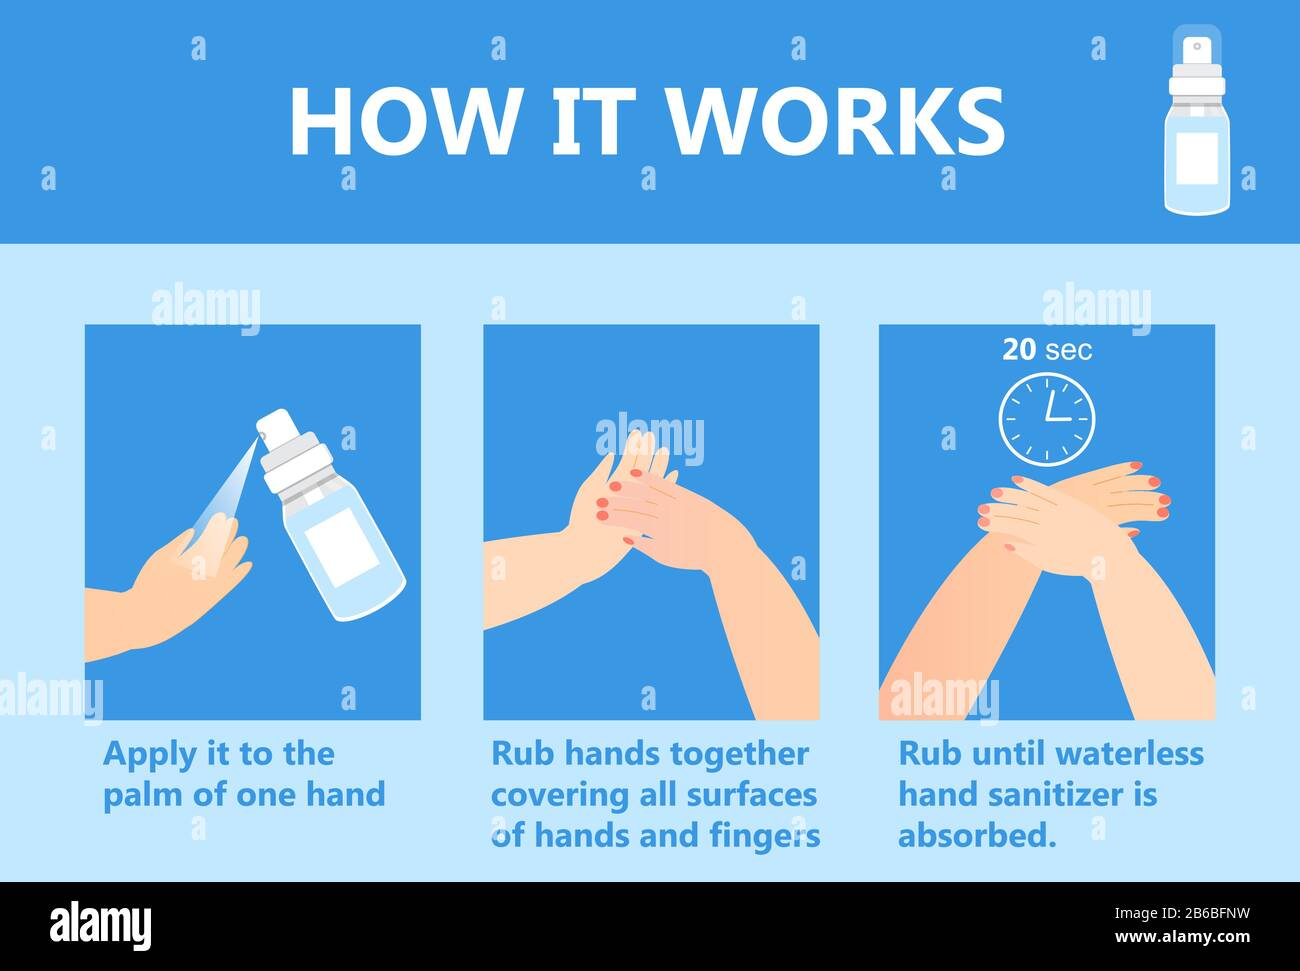 Hand sanitizer application infographic vector. How to use anti-bacterial spray. Personal hygiene dispenser, infection control symbol against colds Stock Vector Image & Art - Alamy